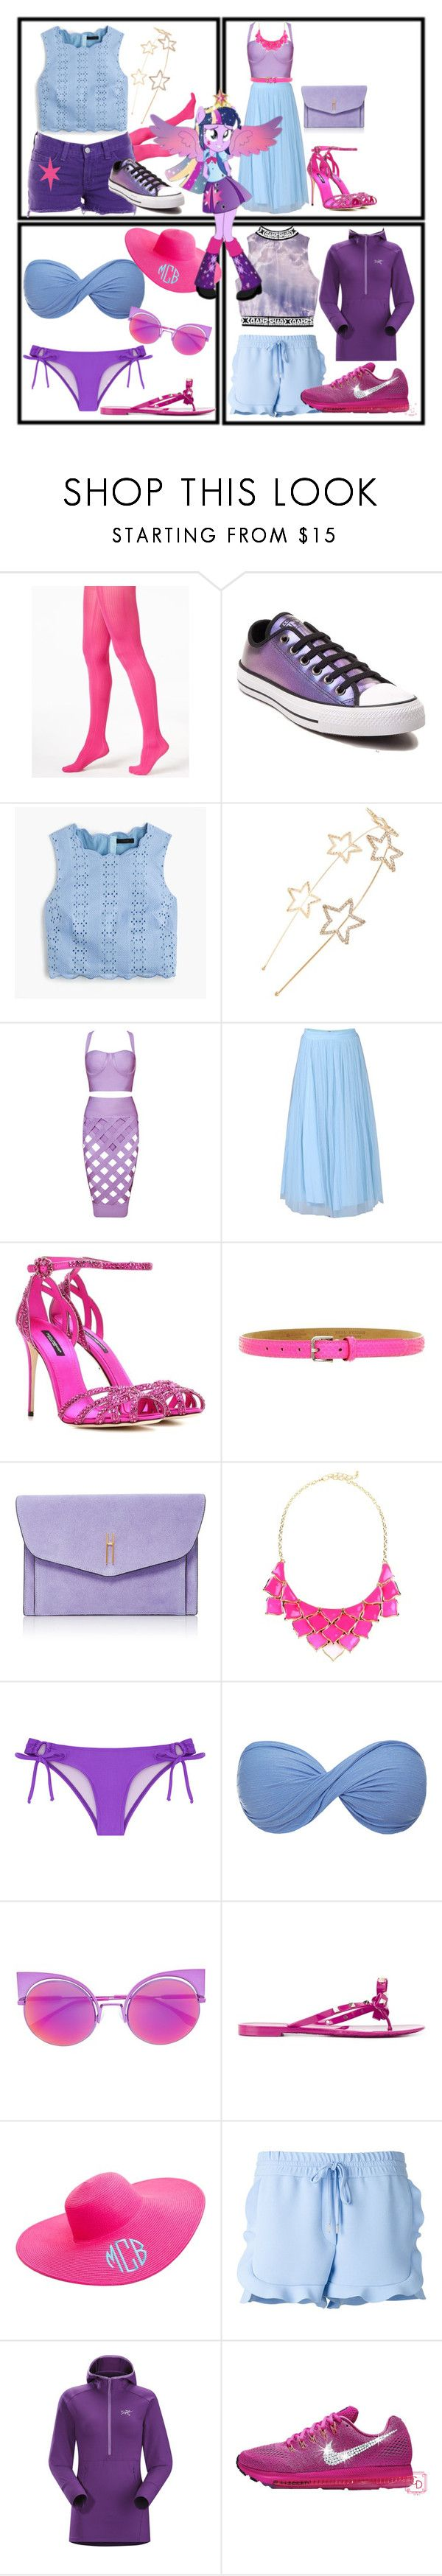 """""""Twilight Sparkle"""" by cartoonsme ❤ liked on Polyvore featuring Hue, J Brand, Converse, J.Crew, Cara, Jolie Moi, Dolce&Gabbana, Fausto Colato, Hayward and George J. Love"""